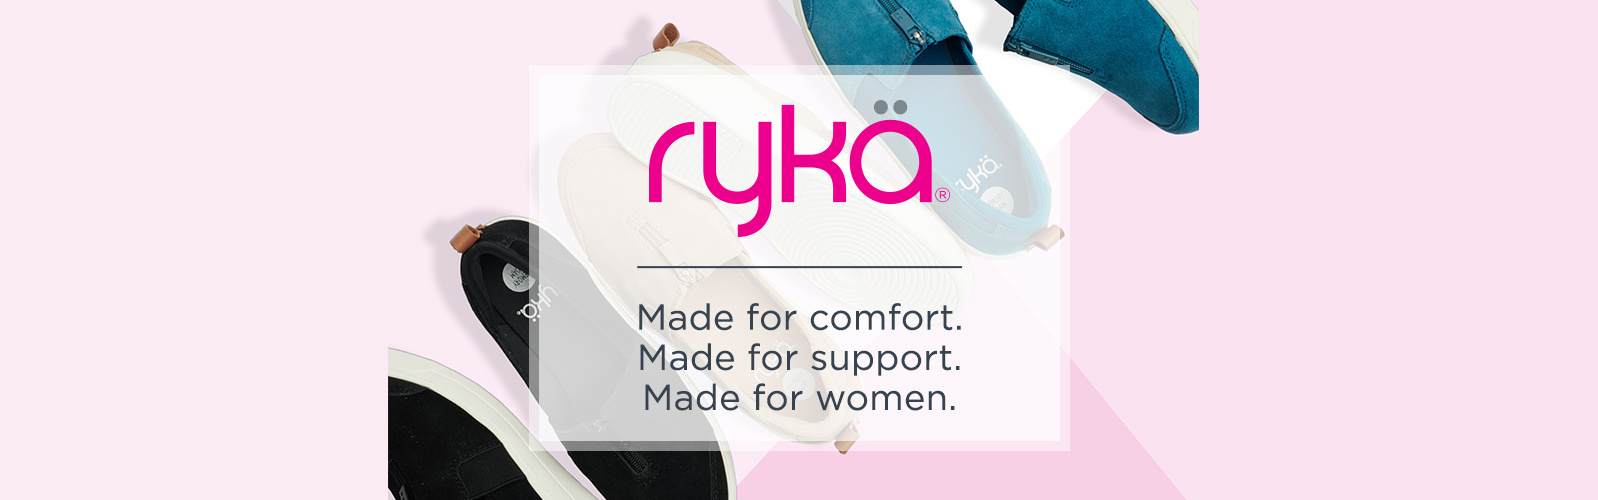 e51d075f4abd Rykä. Made for comfort. Made for support. Made for women.